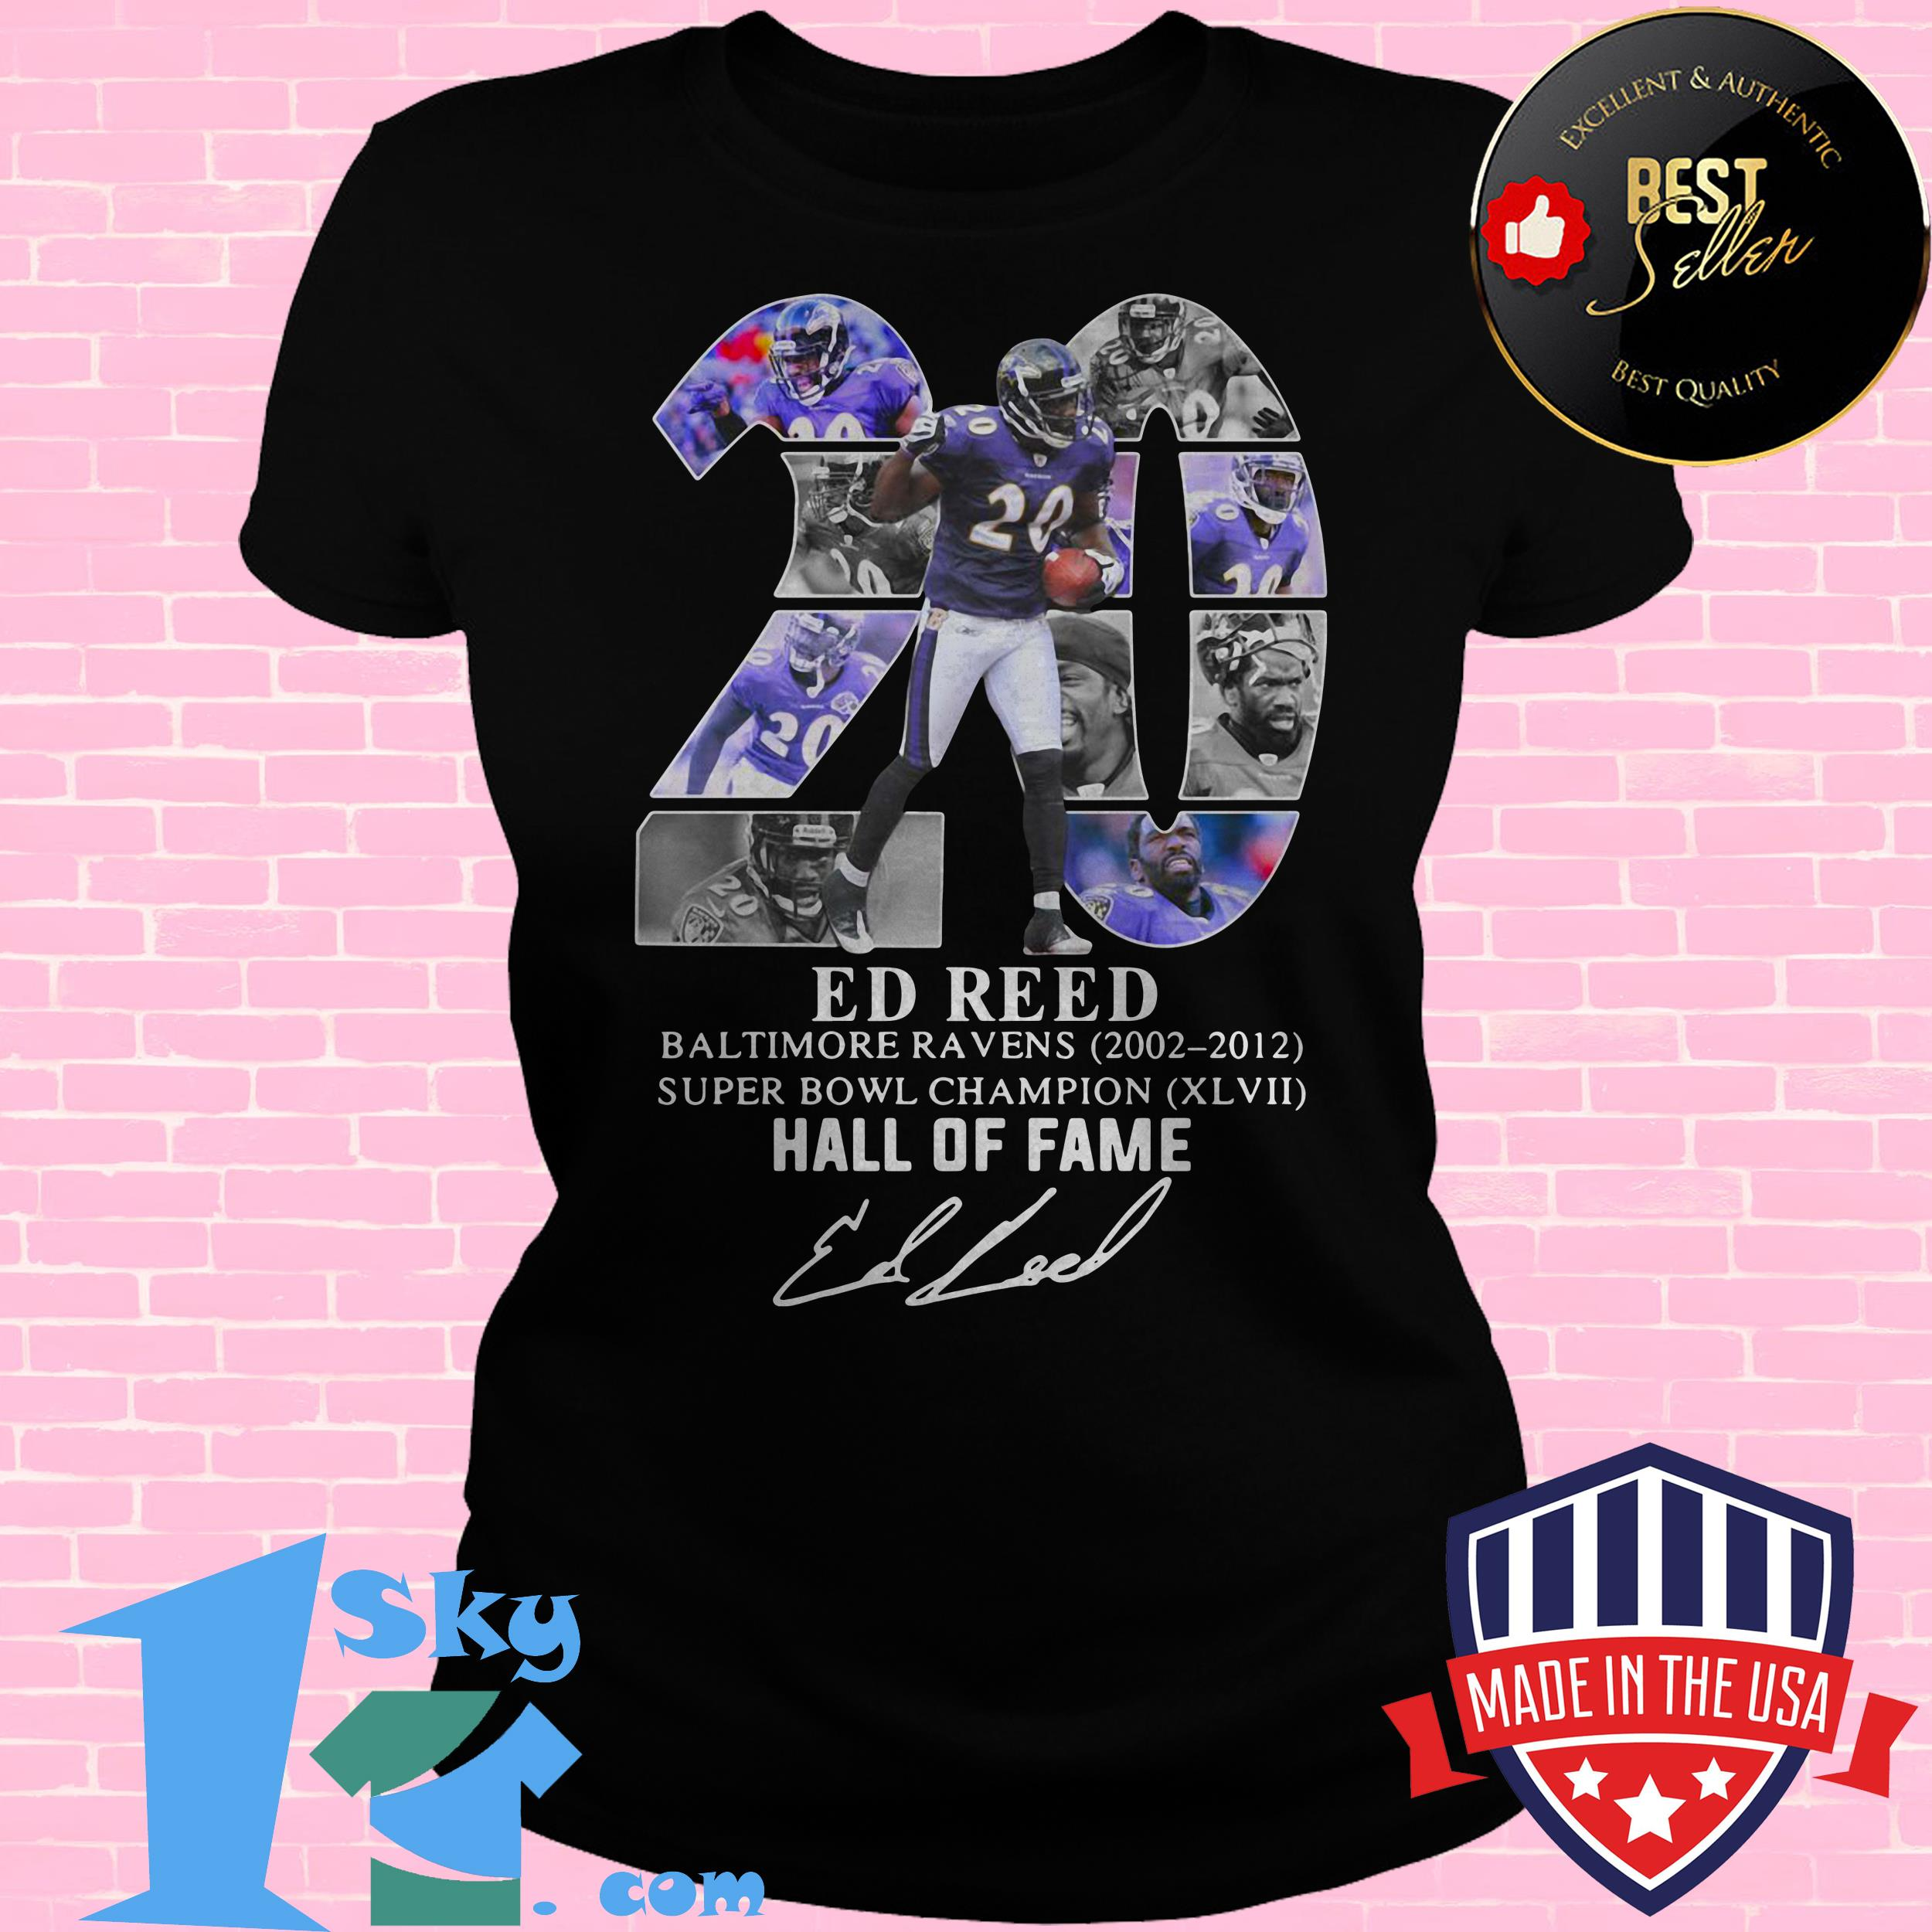 20 ed reed black baltimore ravens super bowl champion hall of fame signature ladies tee - 20 Ed Reed Black Baltimore Ravens Super Bowl Champion Hall of Fame Signature shirt